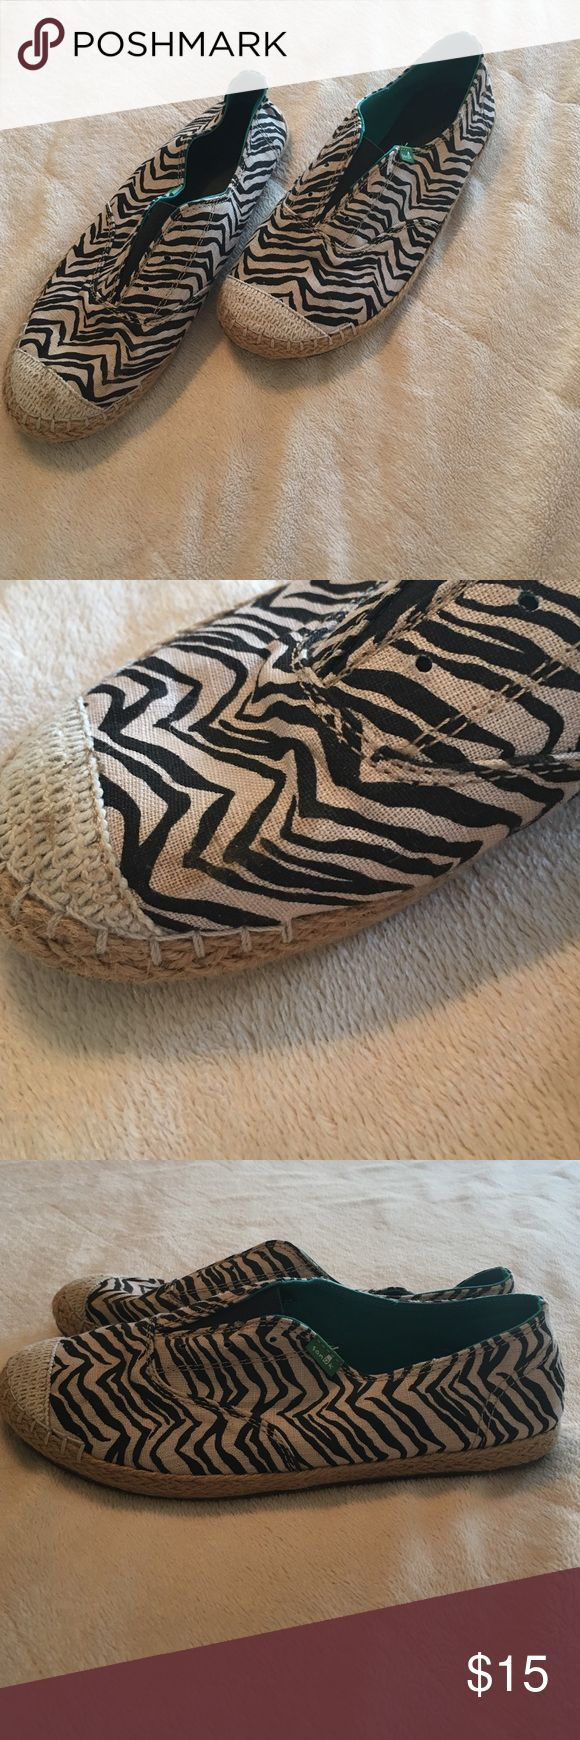 Sanuk zebra shoes Size 9, sanuk shoes. So so comfortable!! Only worn once, some dirt on toes that I have not tried to clean. Shoes